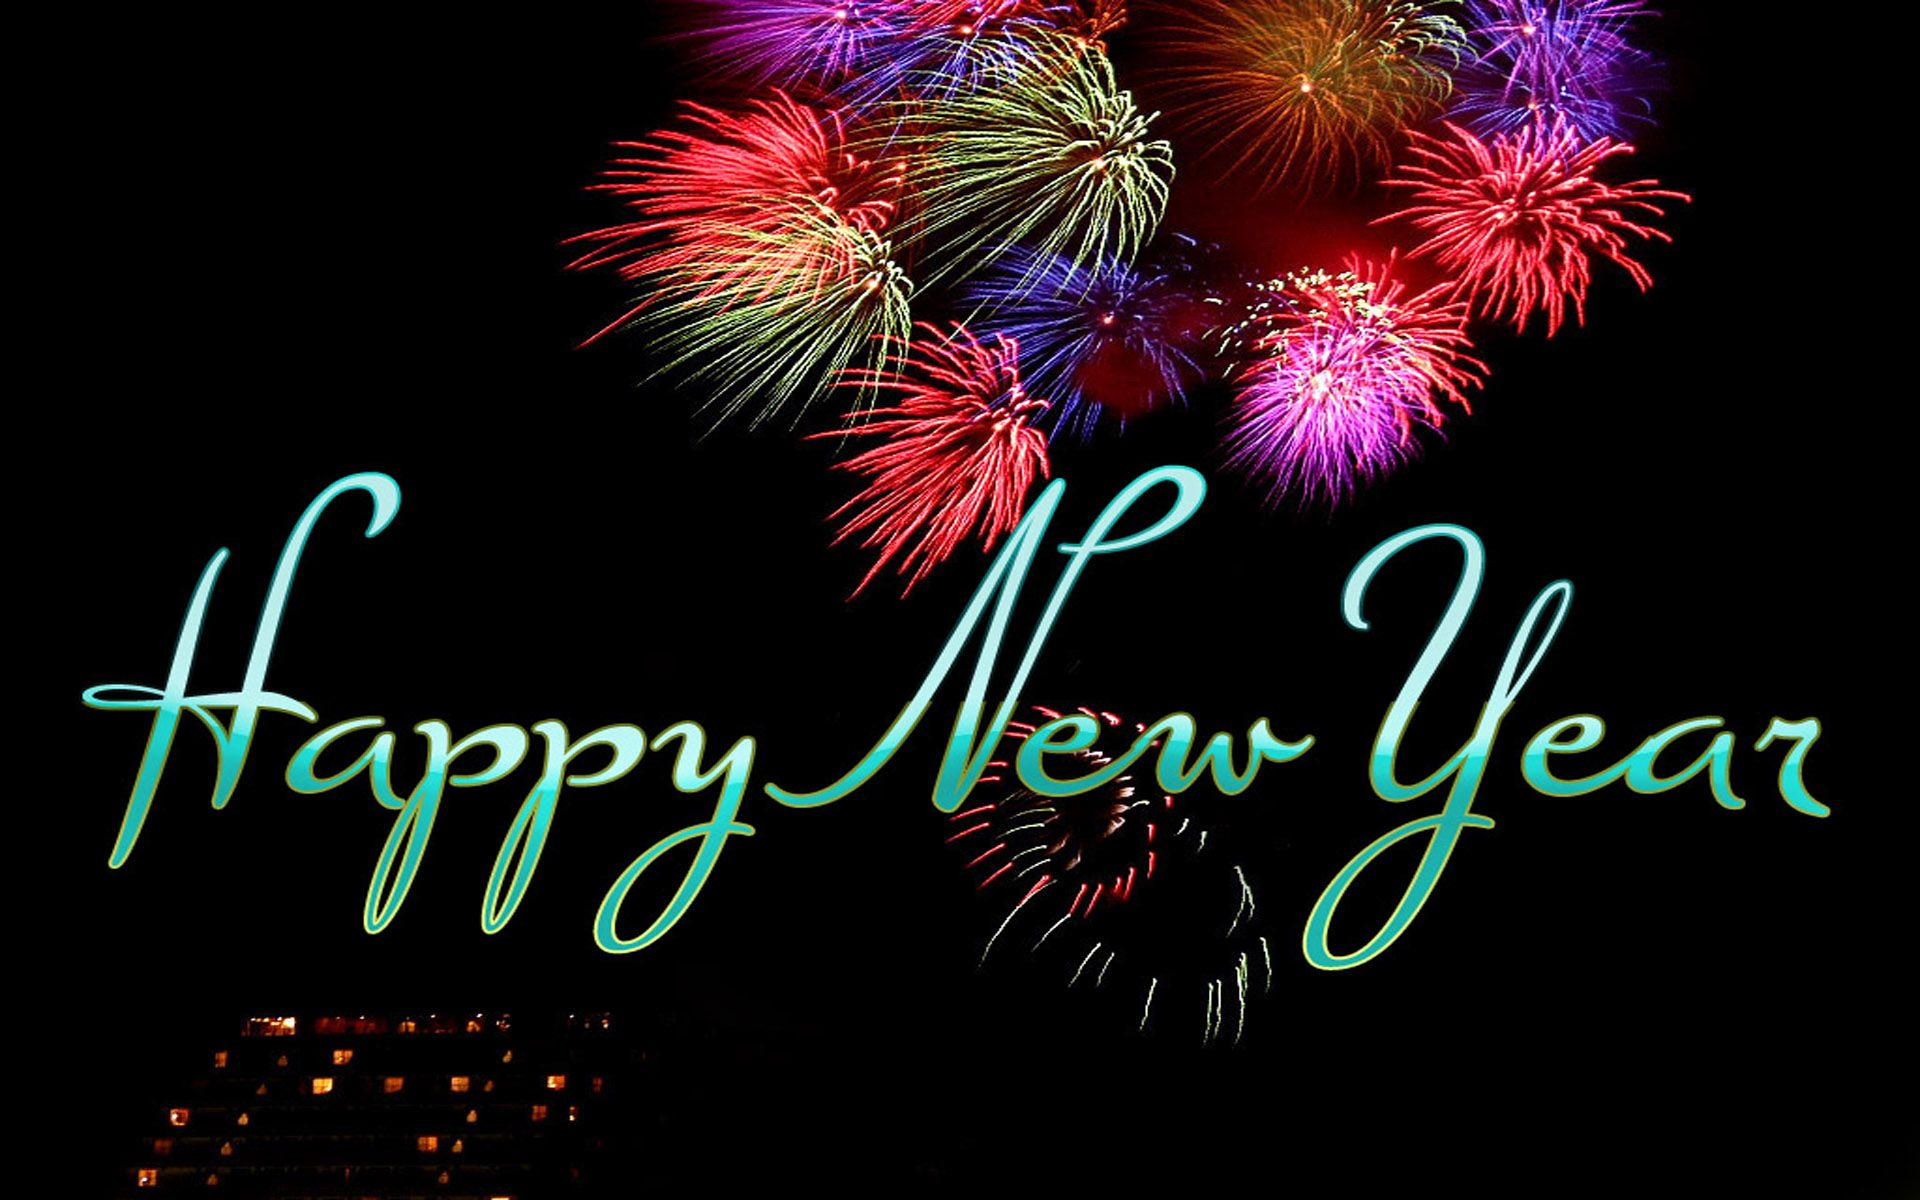 happy new year images hd wallpapers pictures photo pics free download